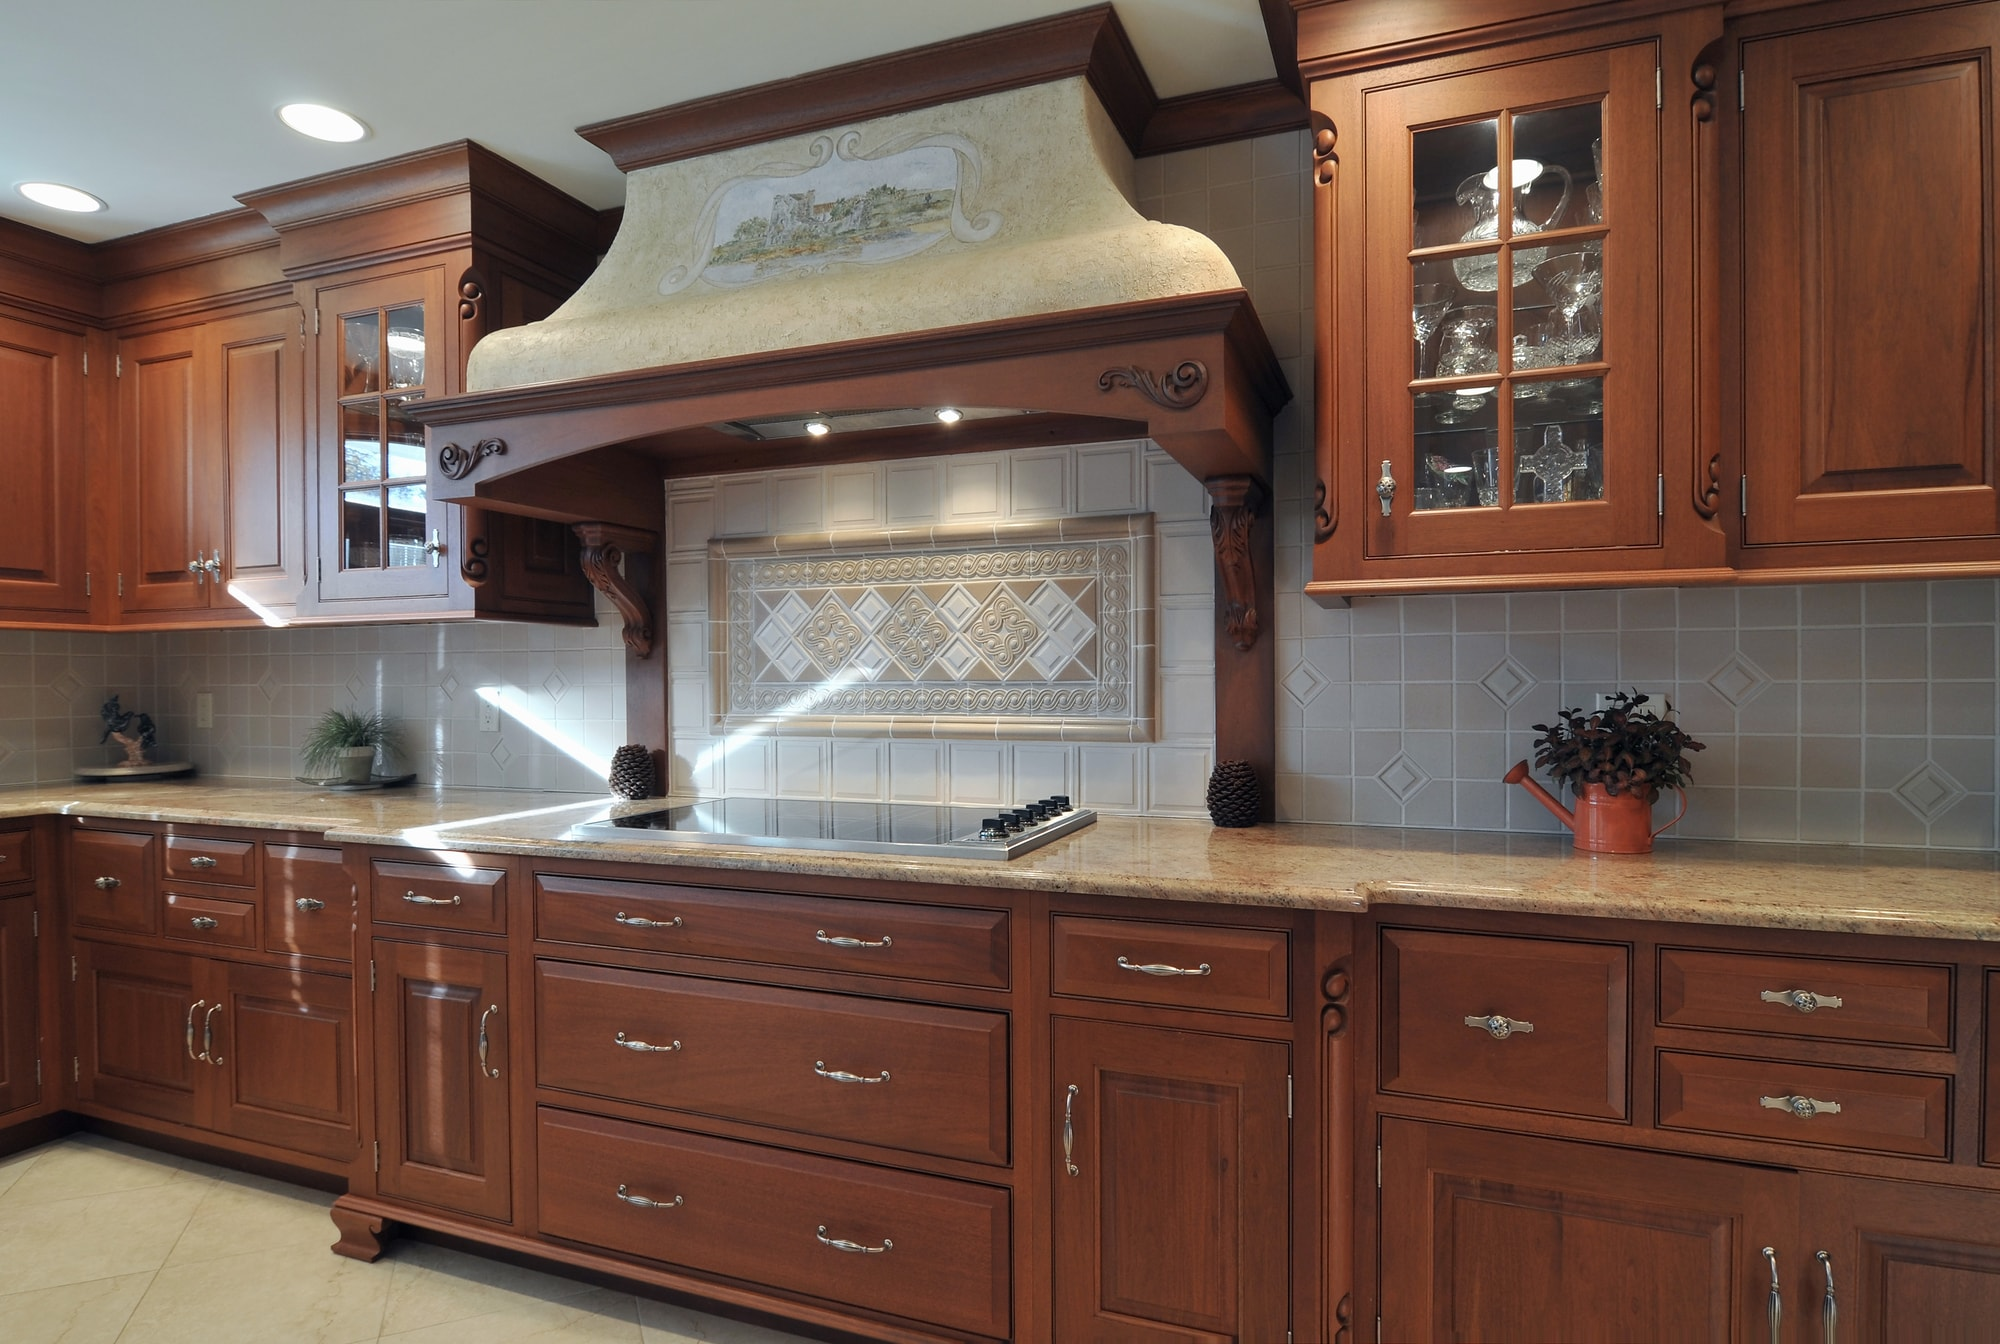 Traditional style kitchen with custom tile backsplash